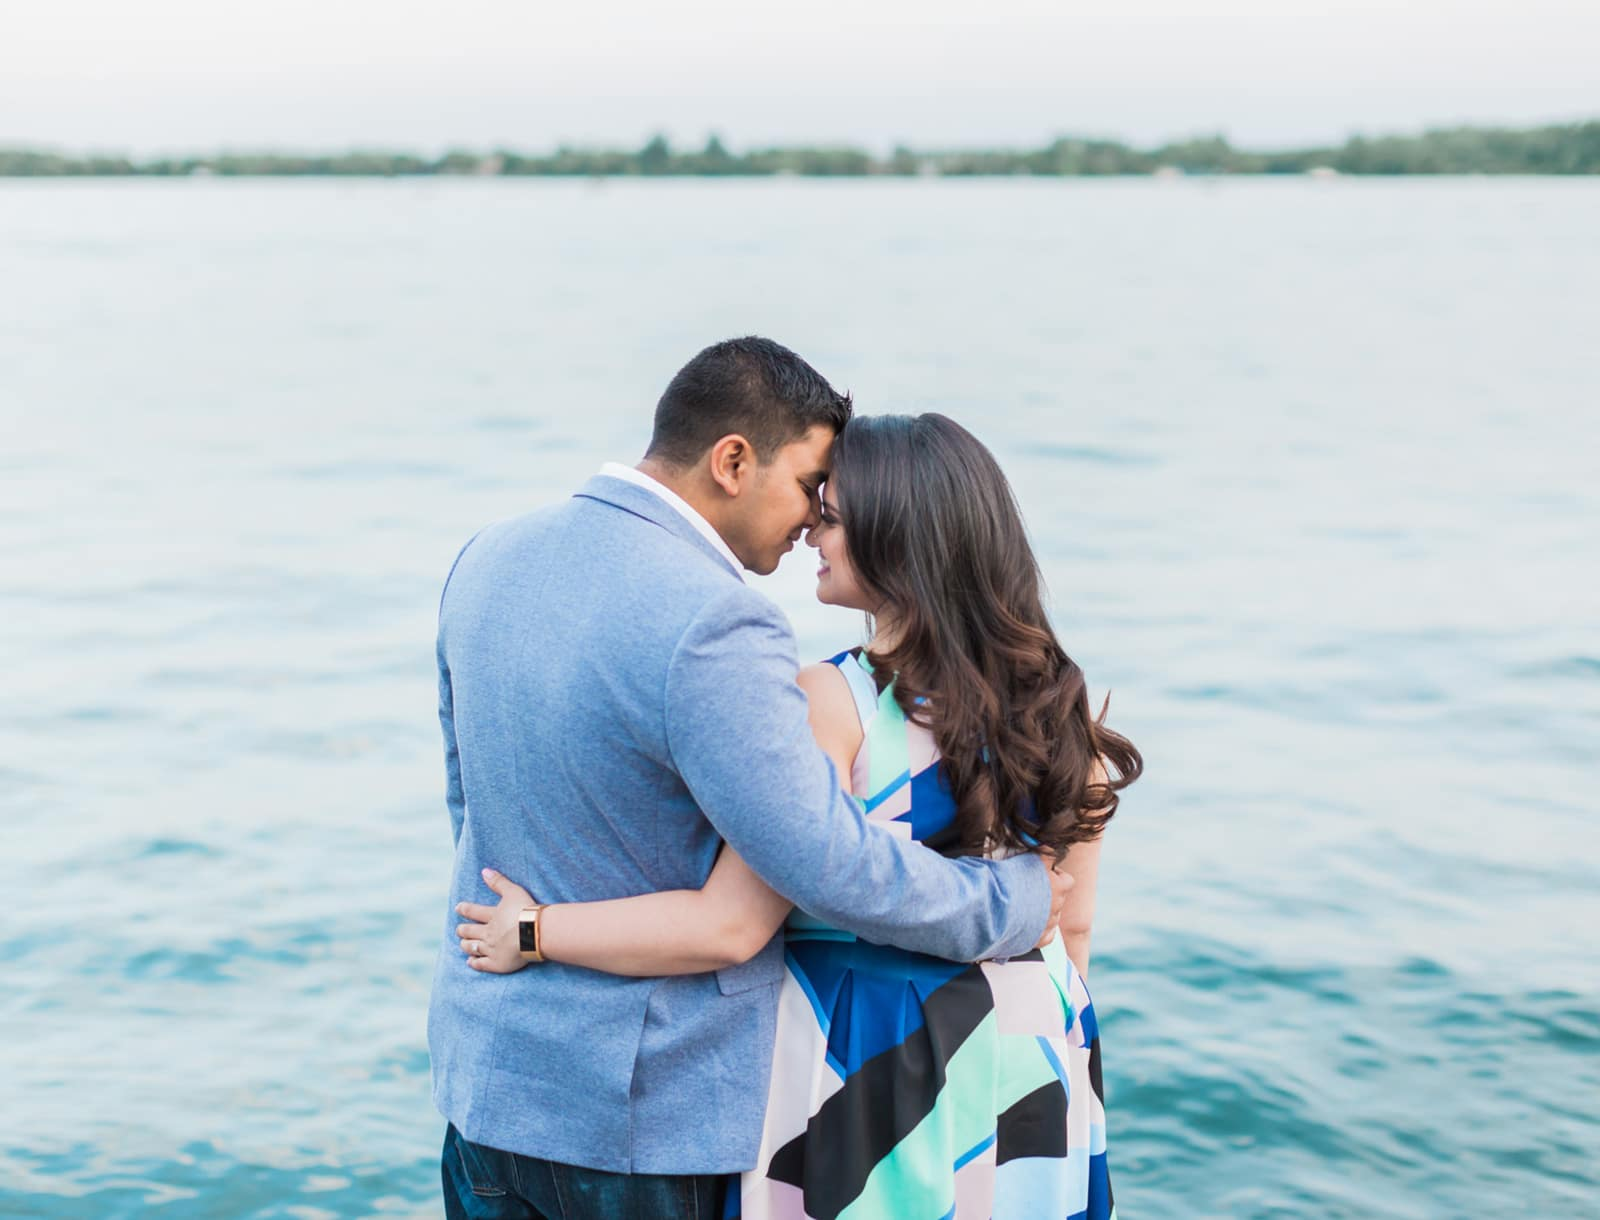 A Sweet Toronto Harbourfront Engagement: Anum + Hussain